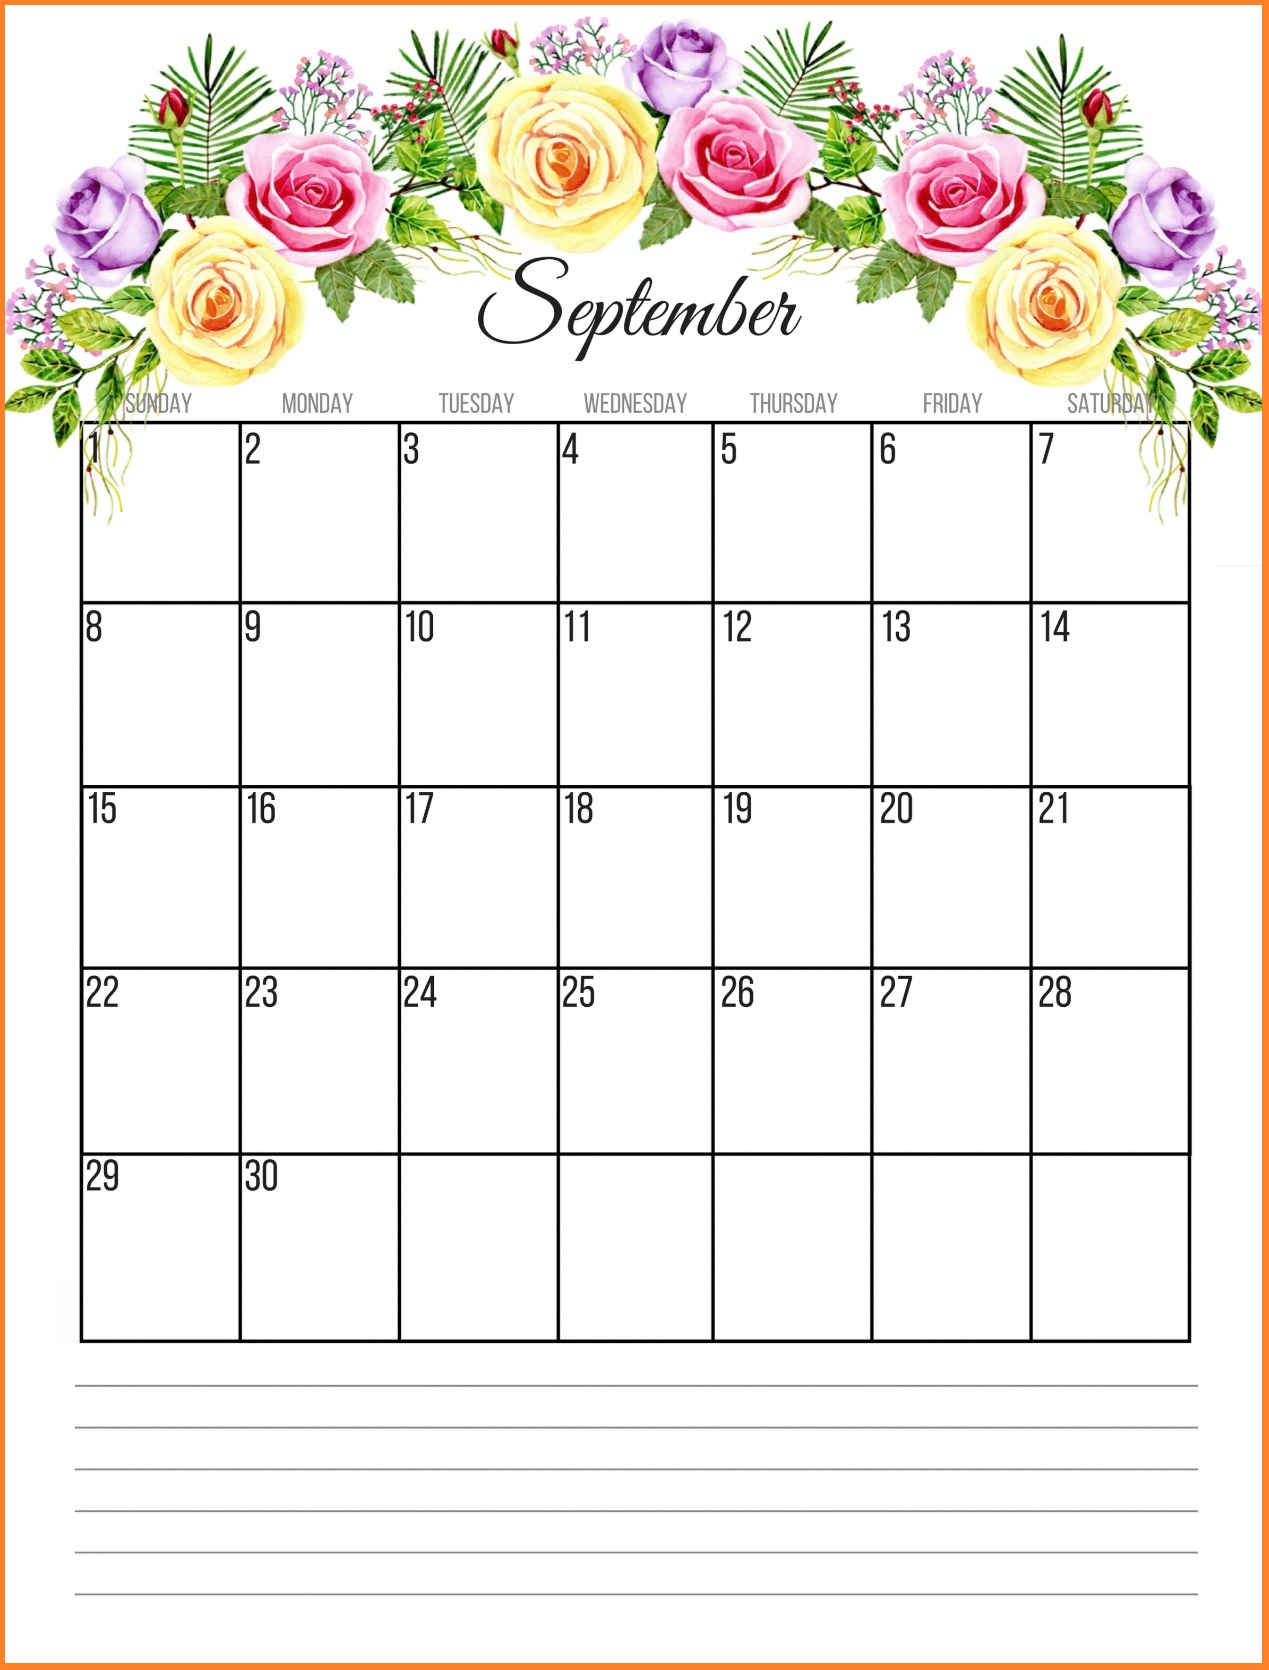 free printable september 2018 monthly calendar september calendar printable template with holidays 2018